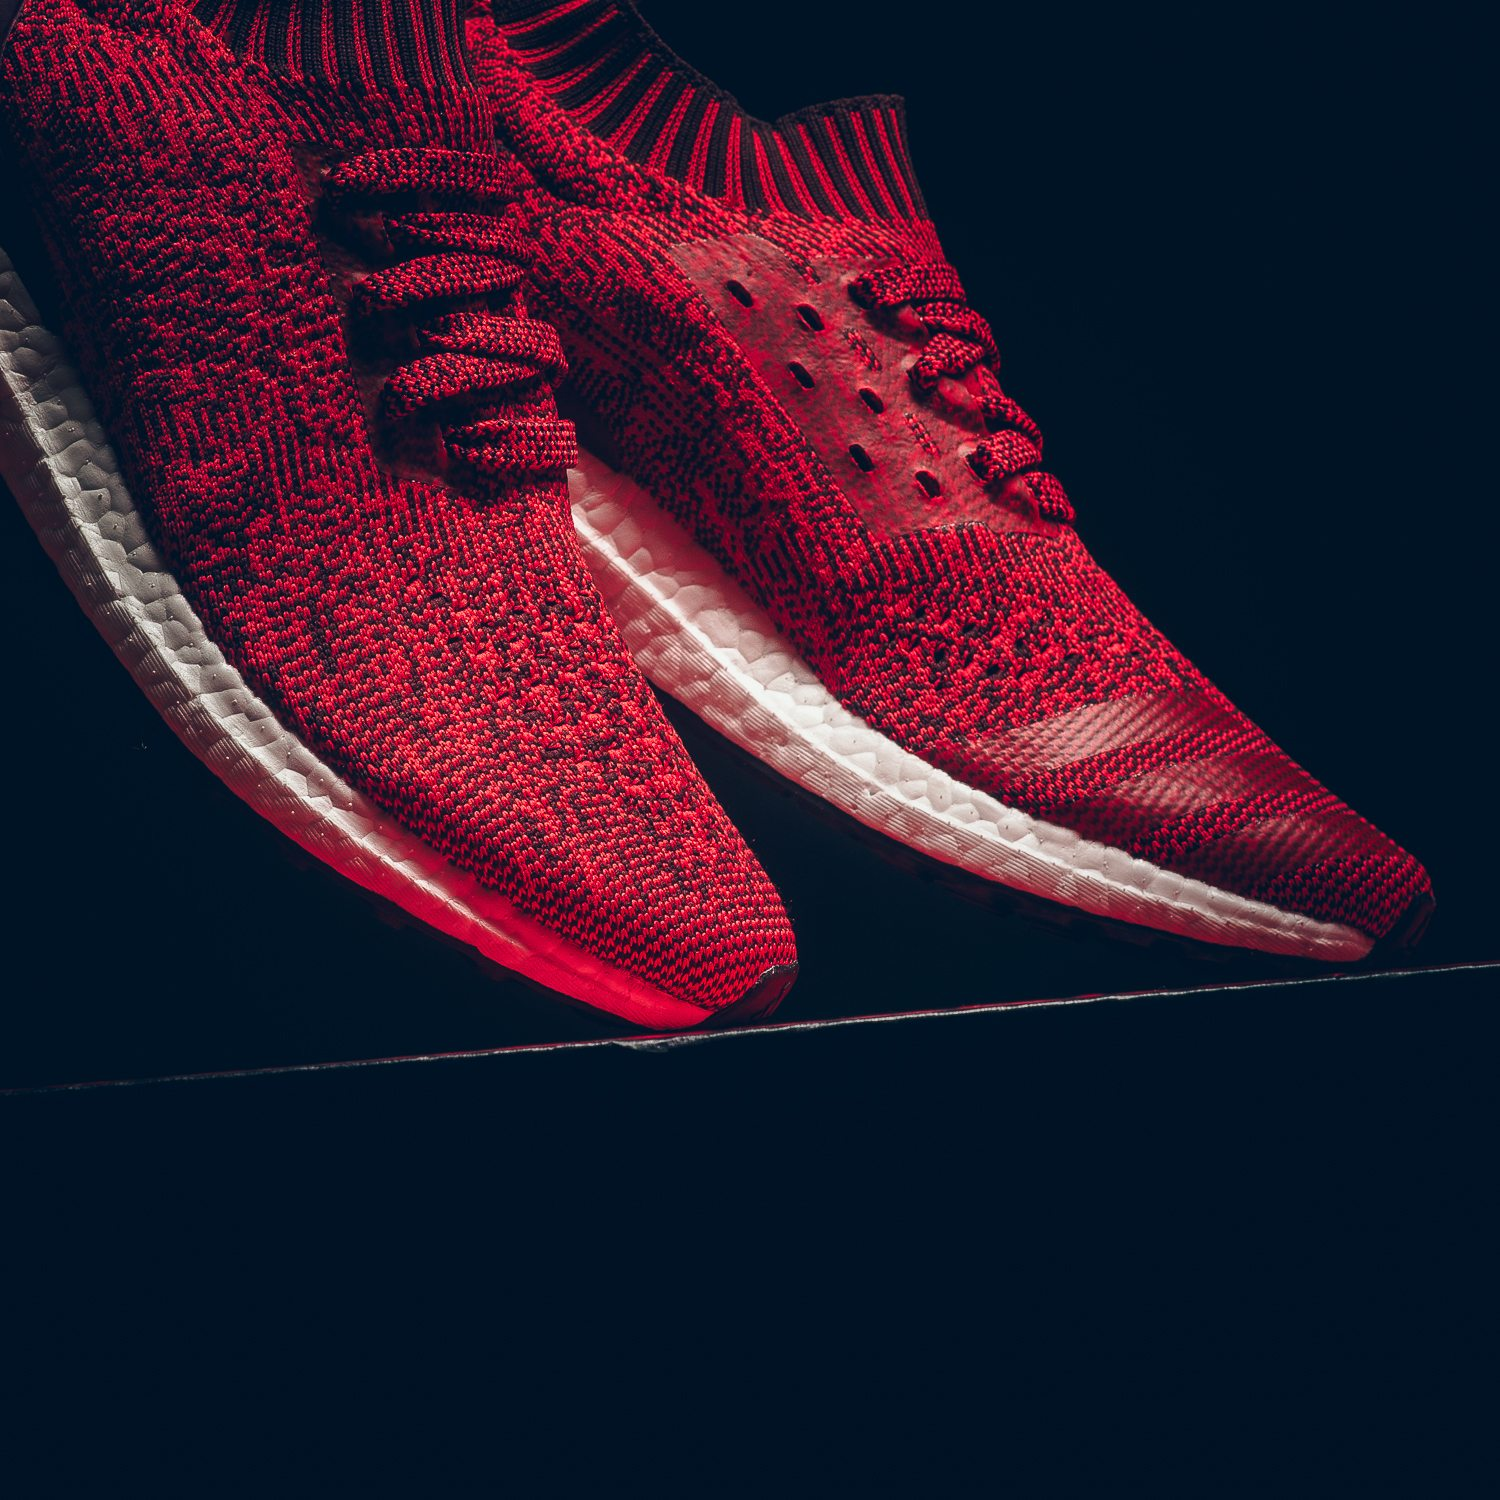 46f7898d586 wholesale adidas ultra boost infrared red black 1cf1c 3aca8  reduced adidas  ultra boost uncaged tactile red f75d0 ff794